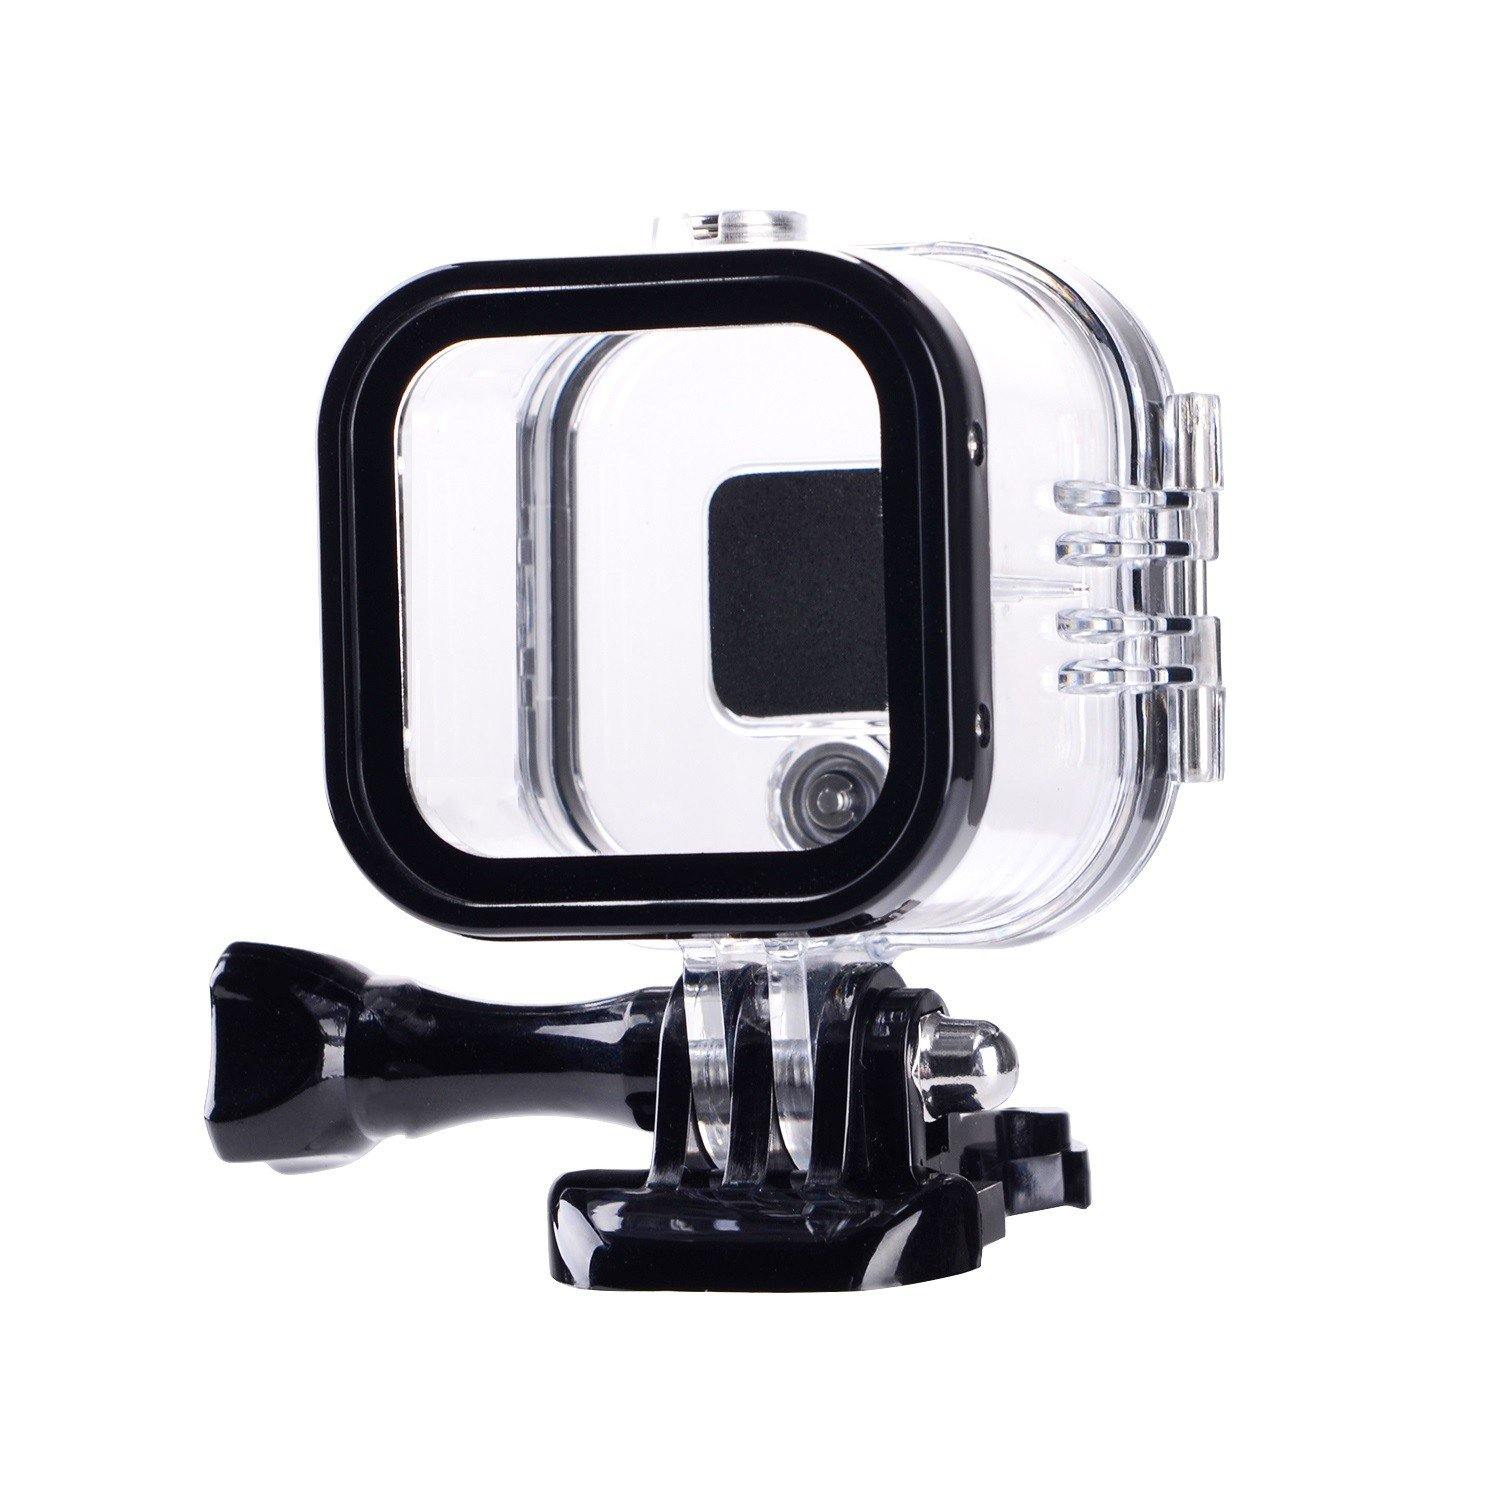 Suptig Replacement Waterproof Case Protective Housing for GoPro Session Hero 4session, 5session Outside Sport Camera for Underwater Use - Water Resistant up to 196ft (60m) RSX-232